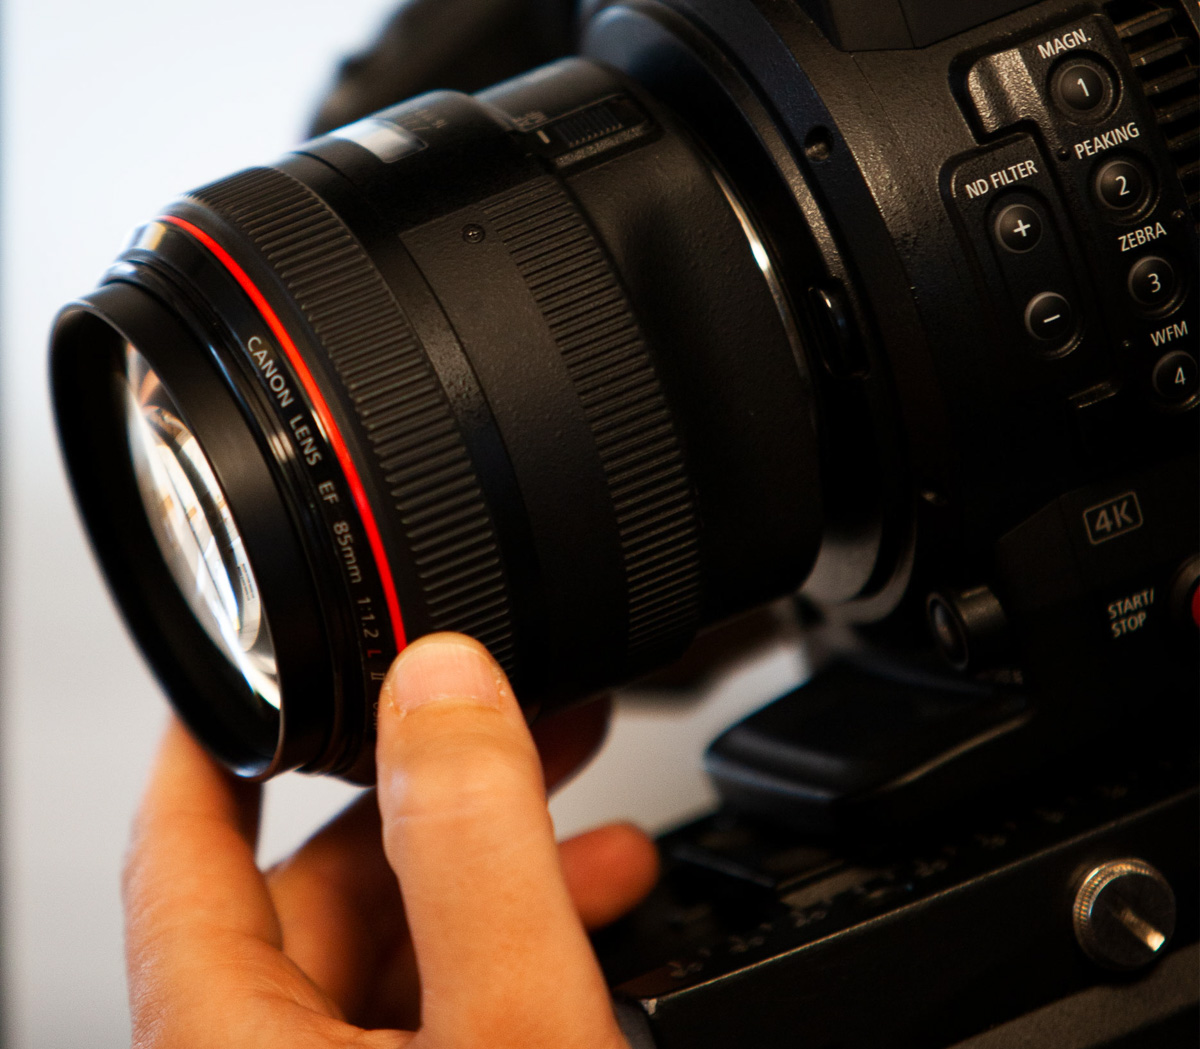 Focusing camera with 50 mm prime lens